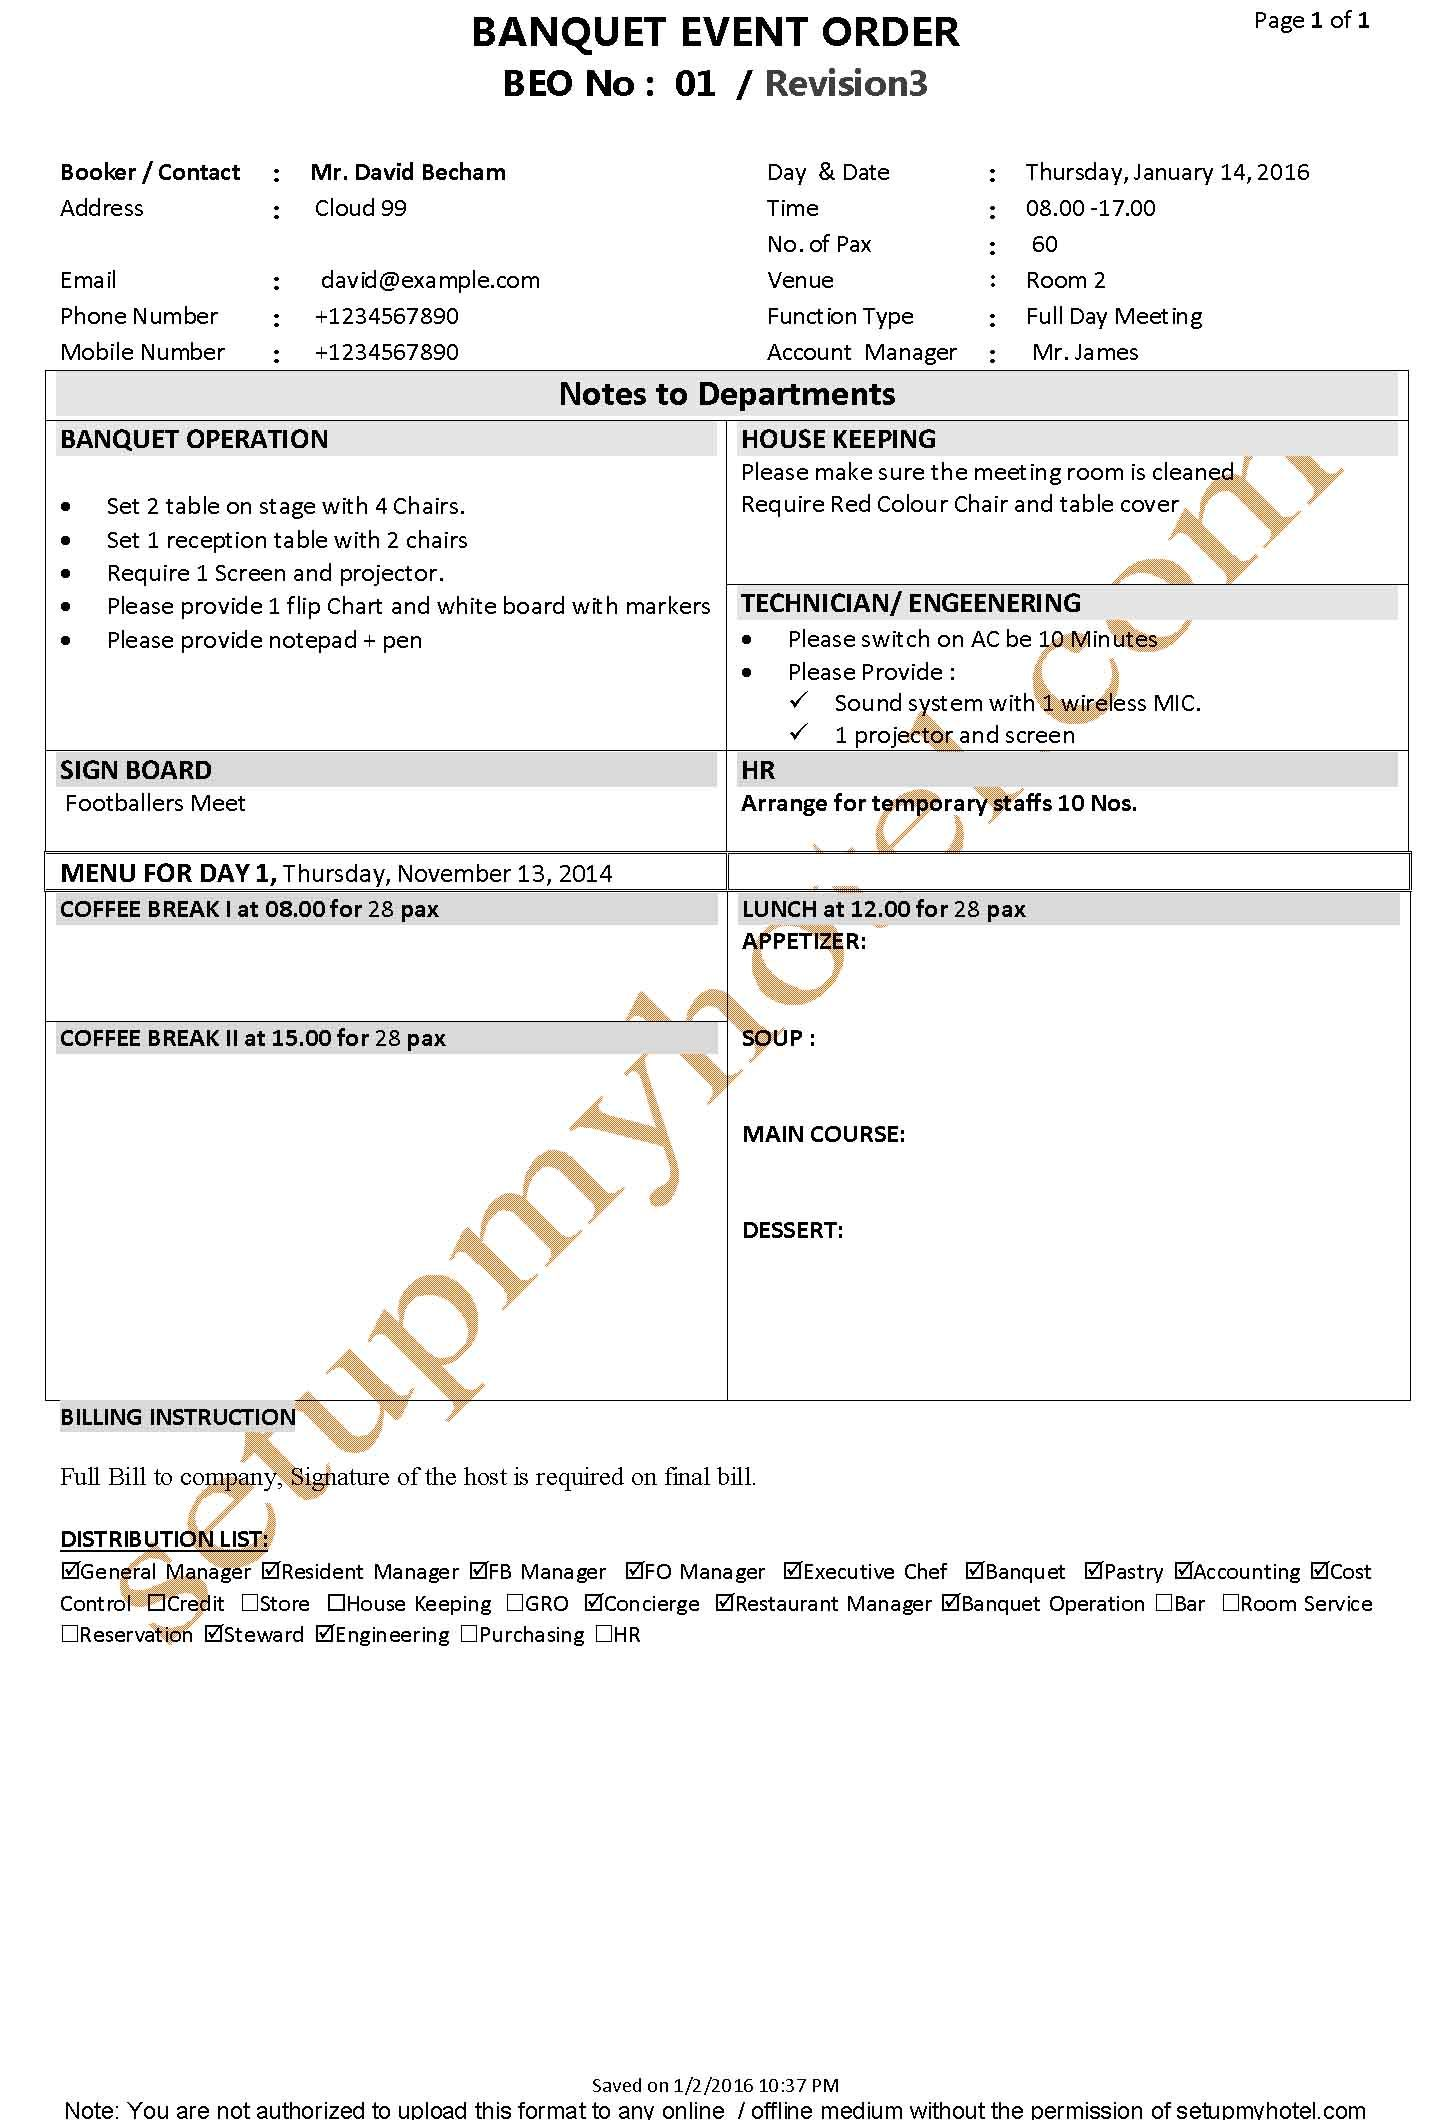 Banquet Function Plan Event Order Form Fp Beo Sample Event